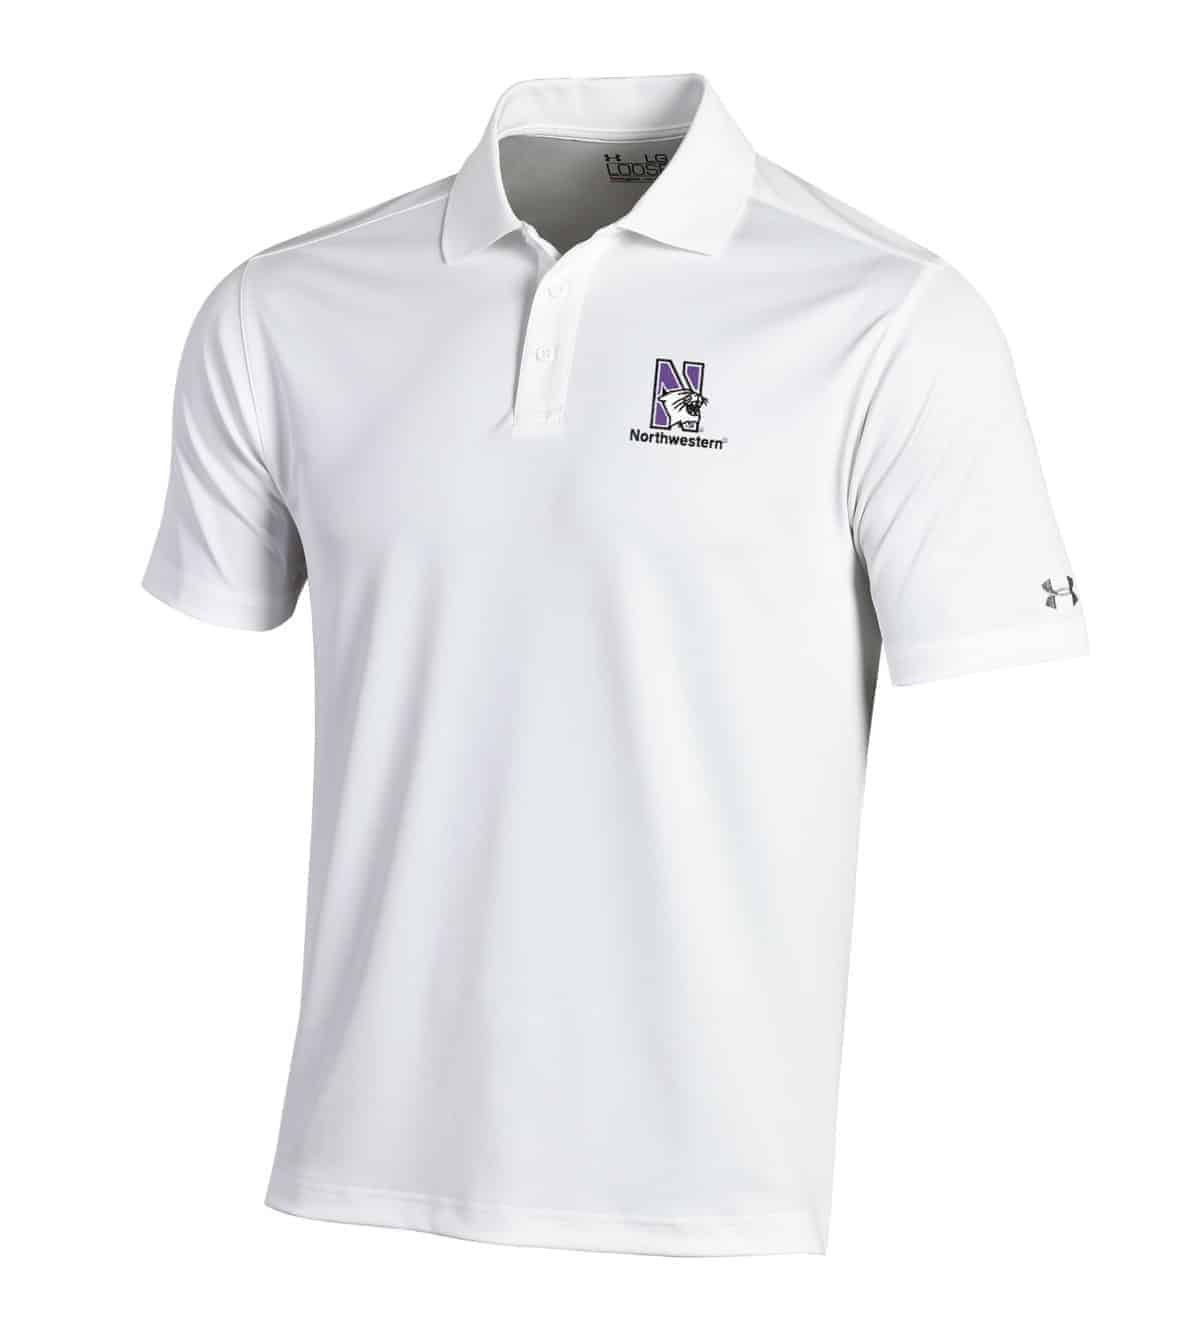 new concept e797e 42d6e Northwestern University Wildcats Under Armour Ladies Solid White Polo Shirt  with Left Chest N-Cat Northwestern Embroidery